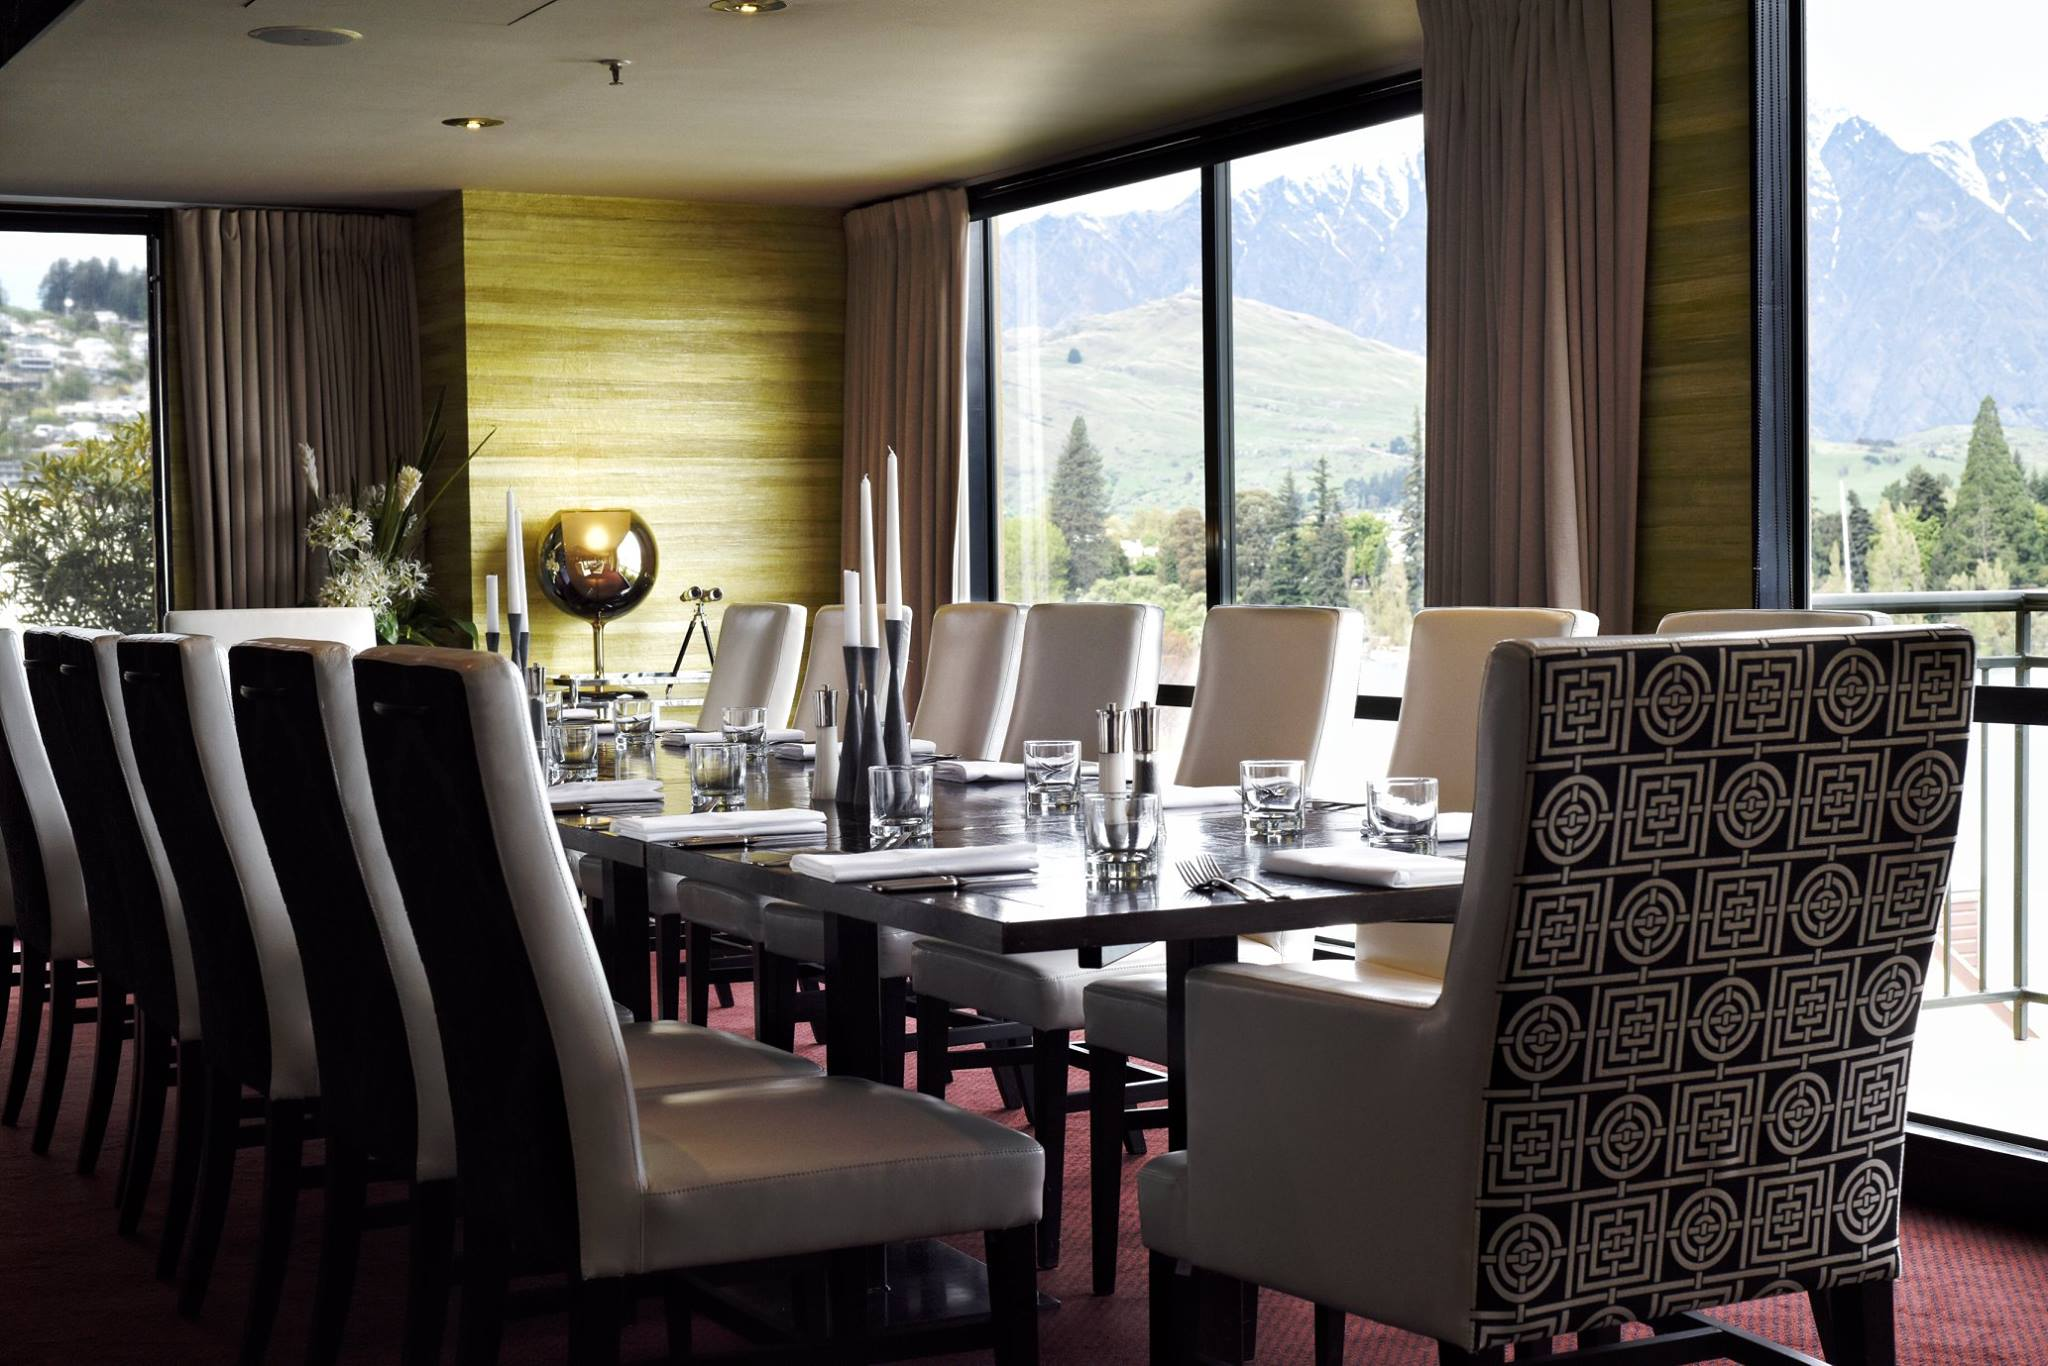 Succumb To Sumptuous Indulgence Of The Lombardi Quarter At Hotel St Moritz Queenstown From Handsome Dining Room Glamorous Den And Sensual